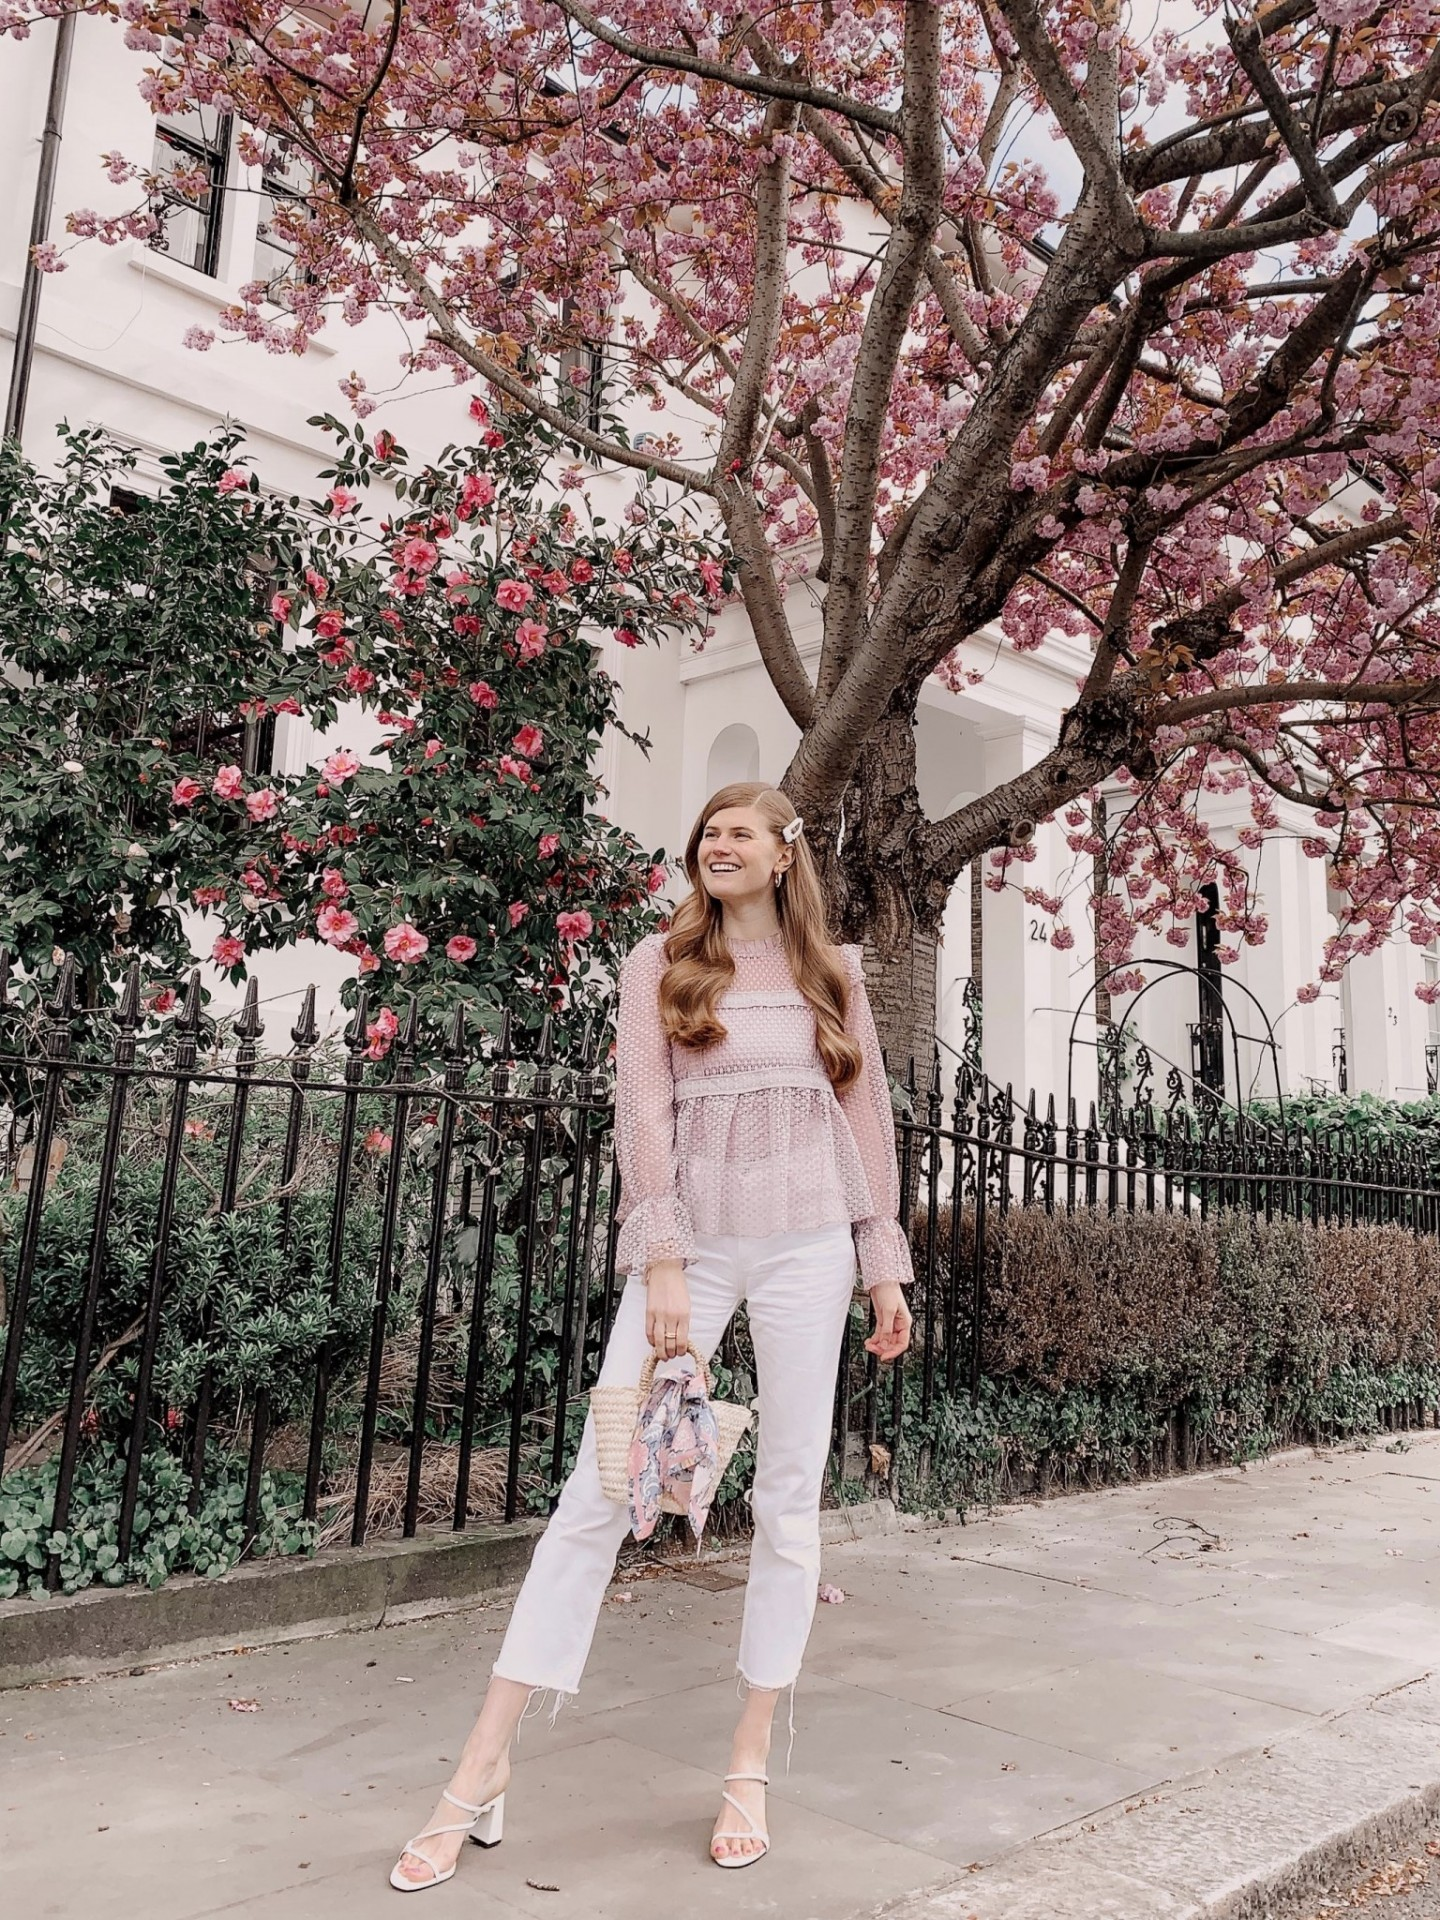 Lifestyle blogger Mollie Moore shares her current favorites in her weekly Friday series, Moore Please!